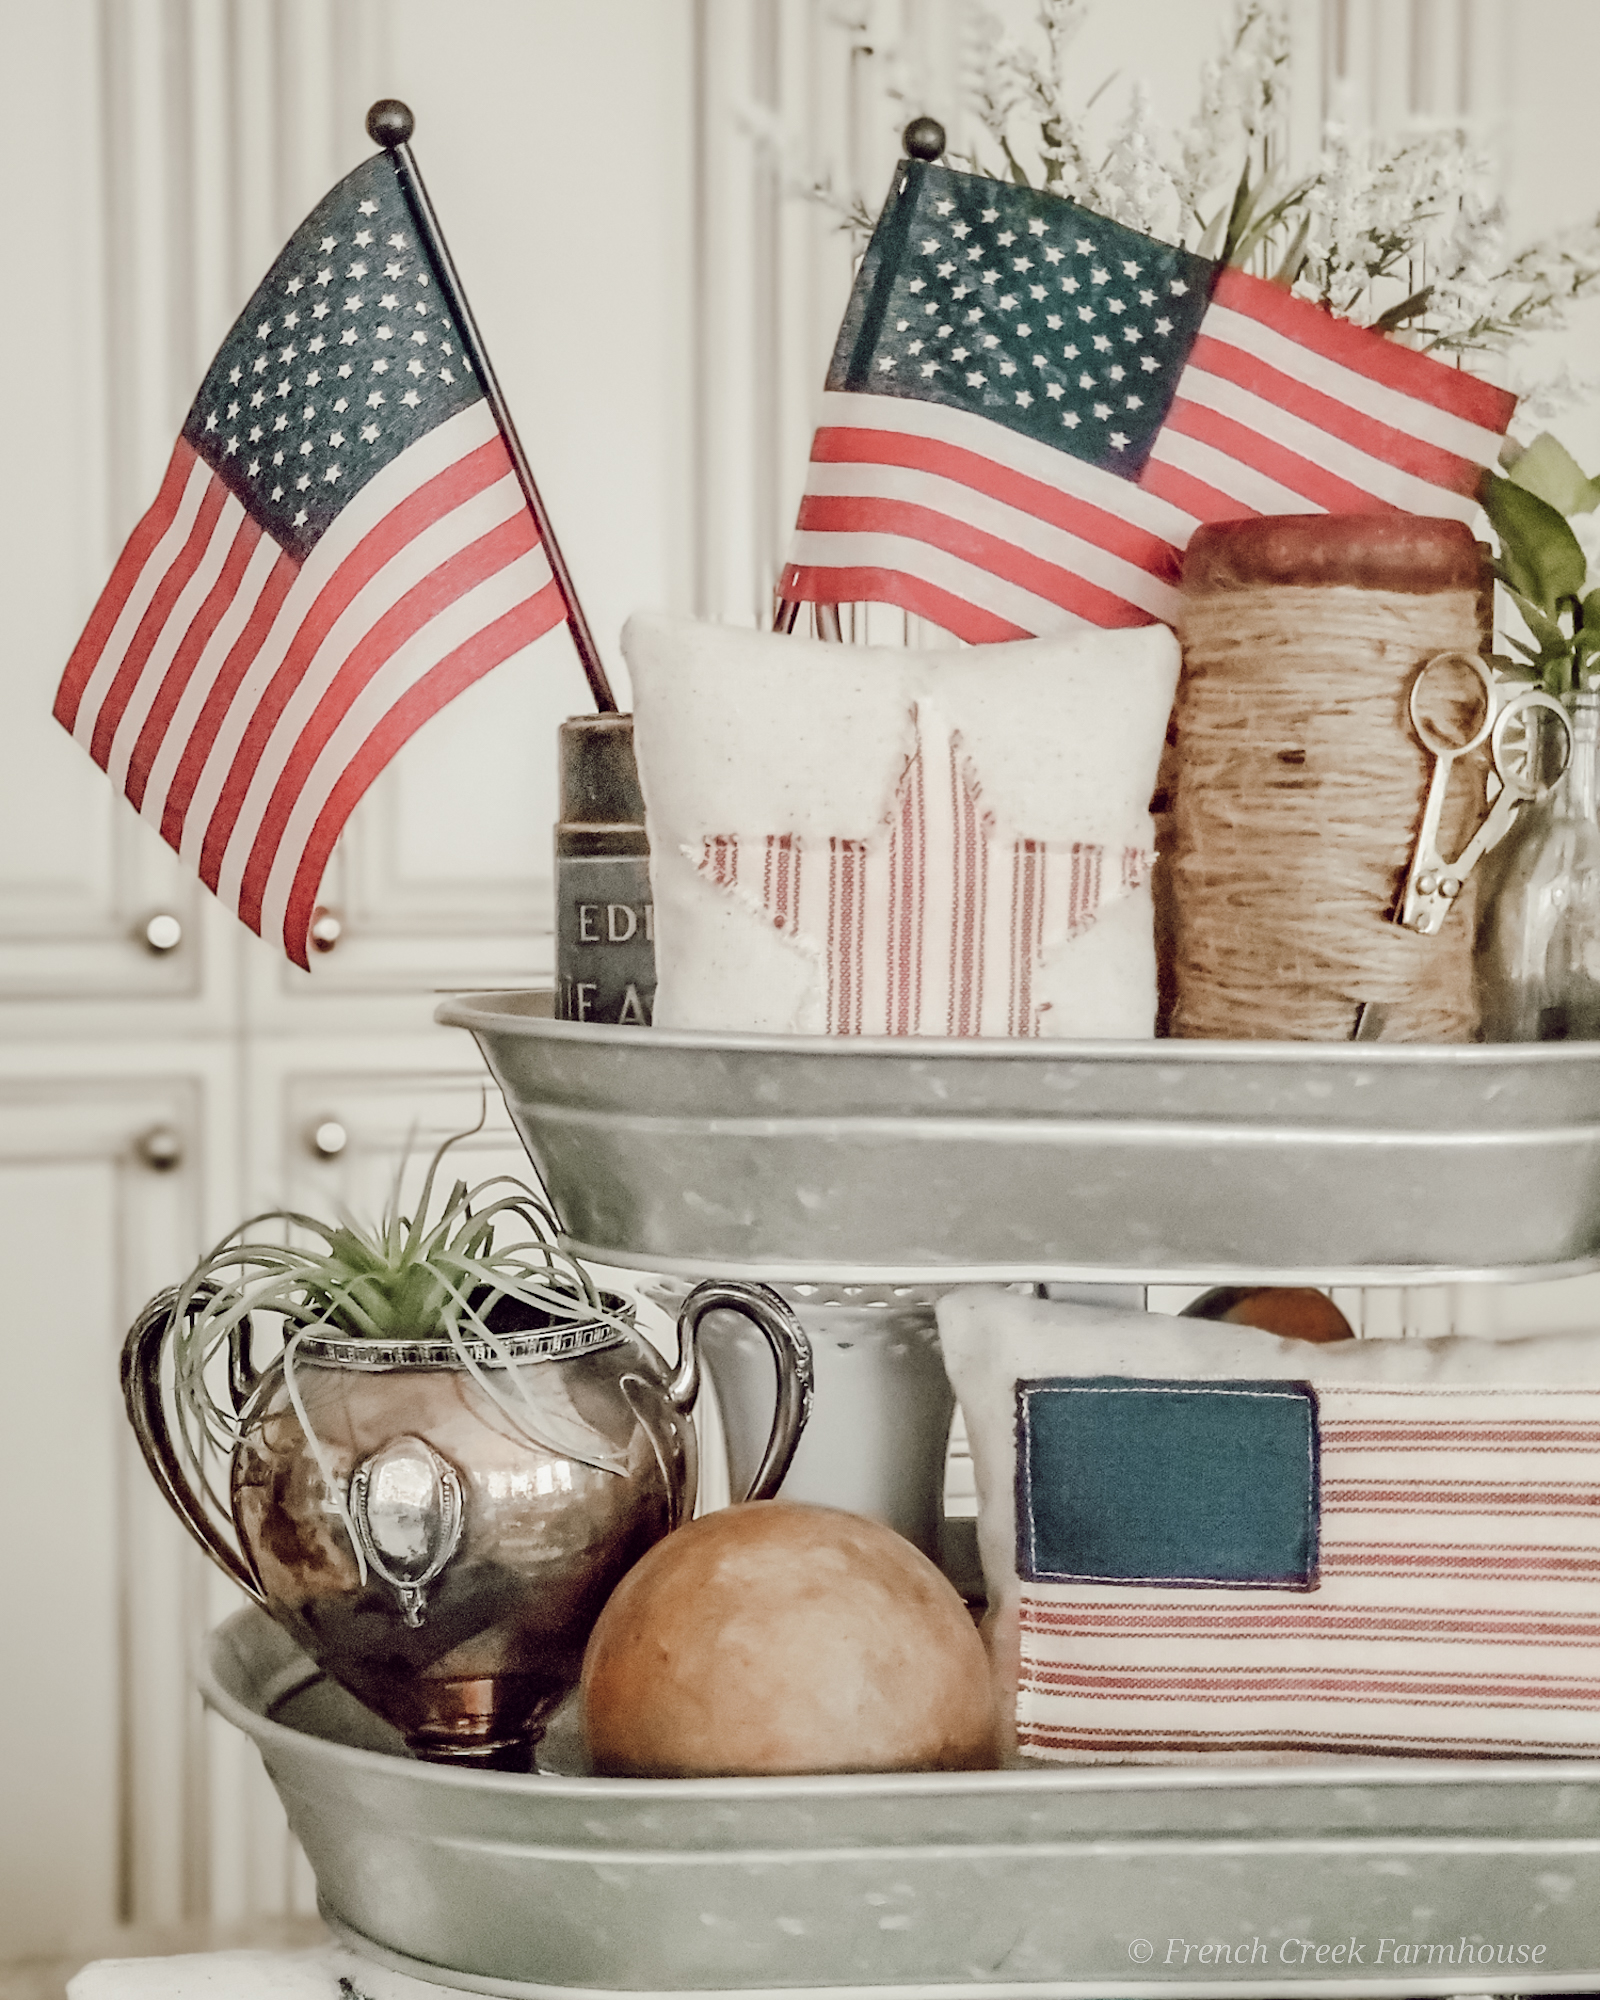 American flags top a tiered tray decorated for 4th of July